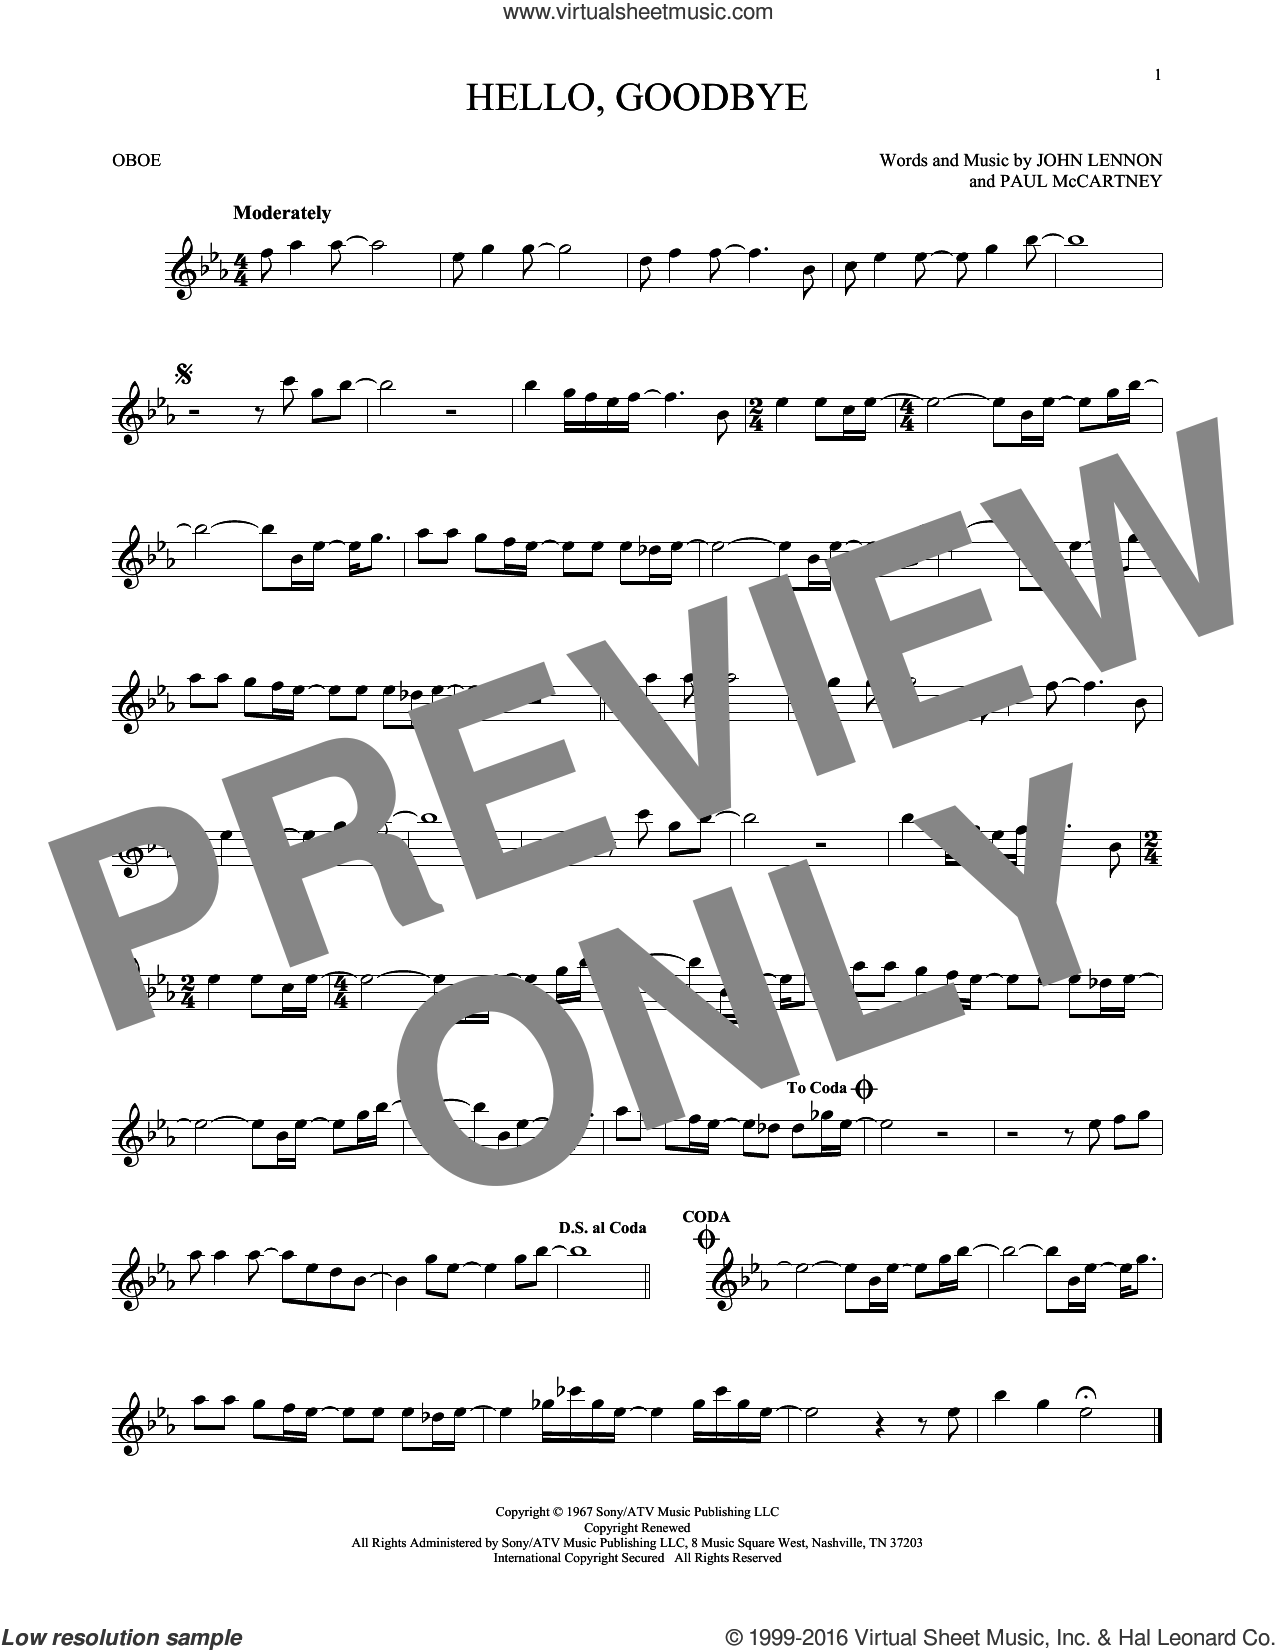 Hello, Goodbye sheet music for oboe solo by The Beatles, John Lennon and Paul McCartney, intermediate skill level